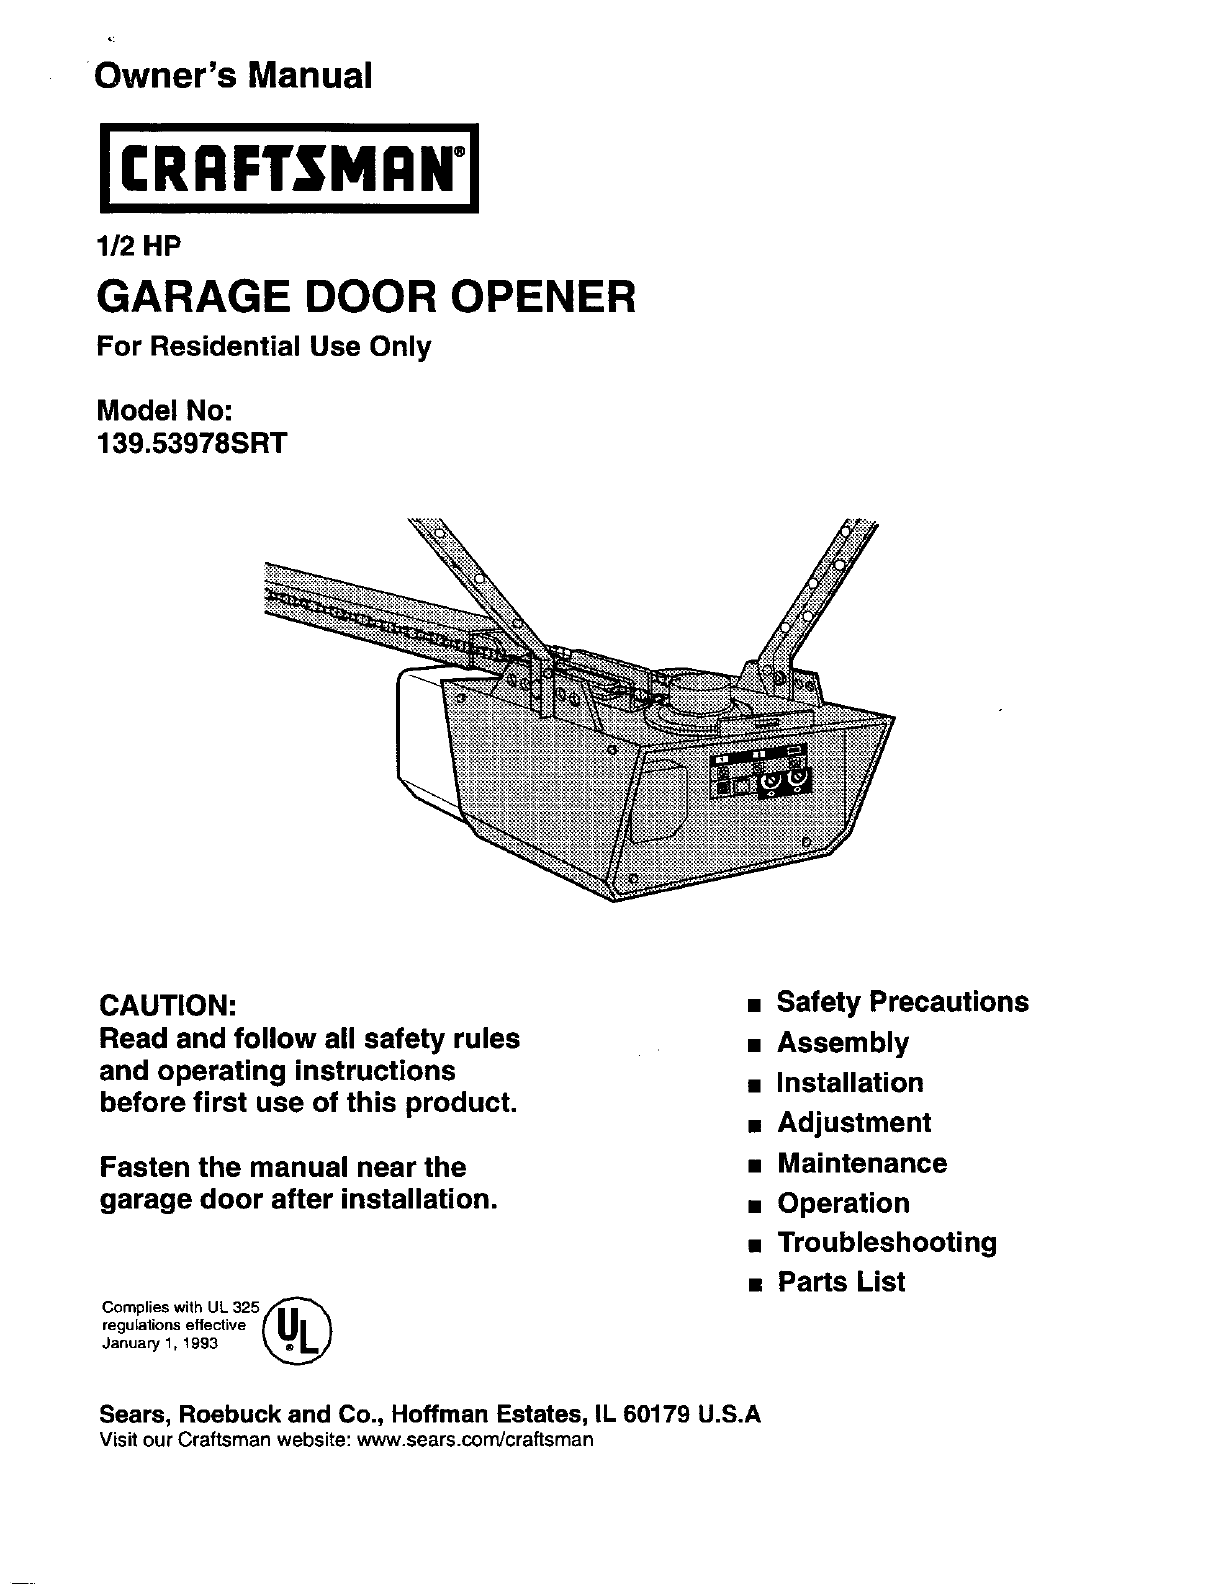 0f05b938 d0cb 4872 aeee 96ef63eab4f3 bg1 craftsman garage door opener 139 53978srt user guide Craftsman Plunge Router Models at pacquiaovsvargaslive.co